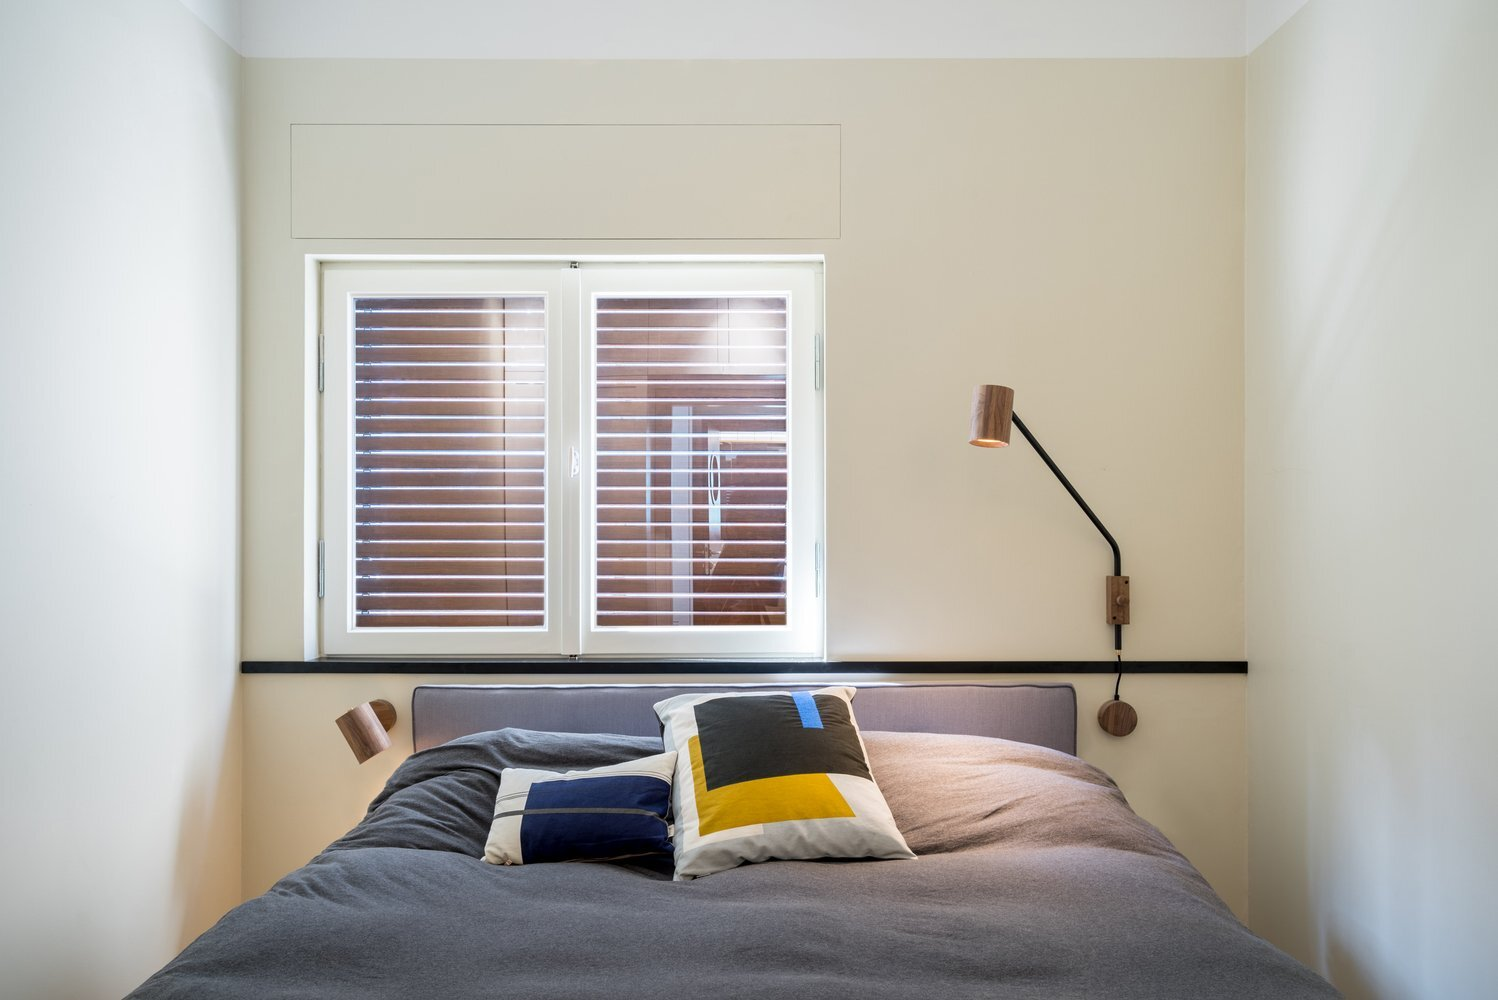 Work and Live - RUST Architects - Israel - Bedroom - Humble Homes